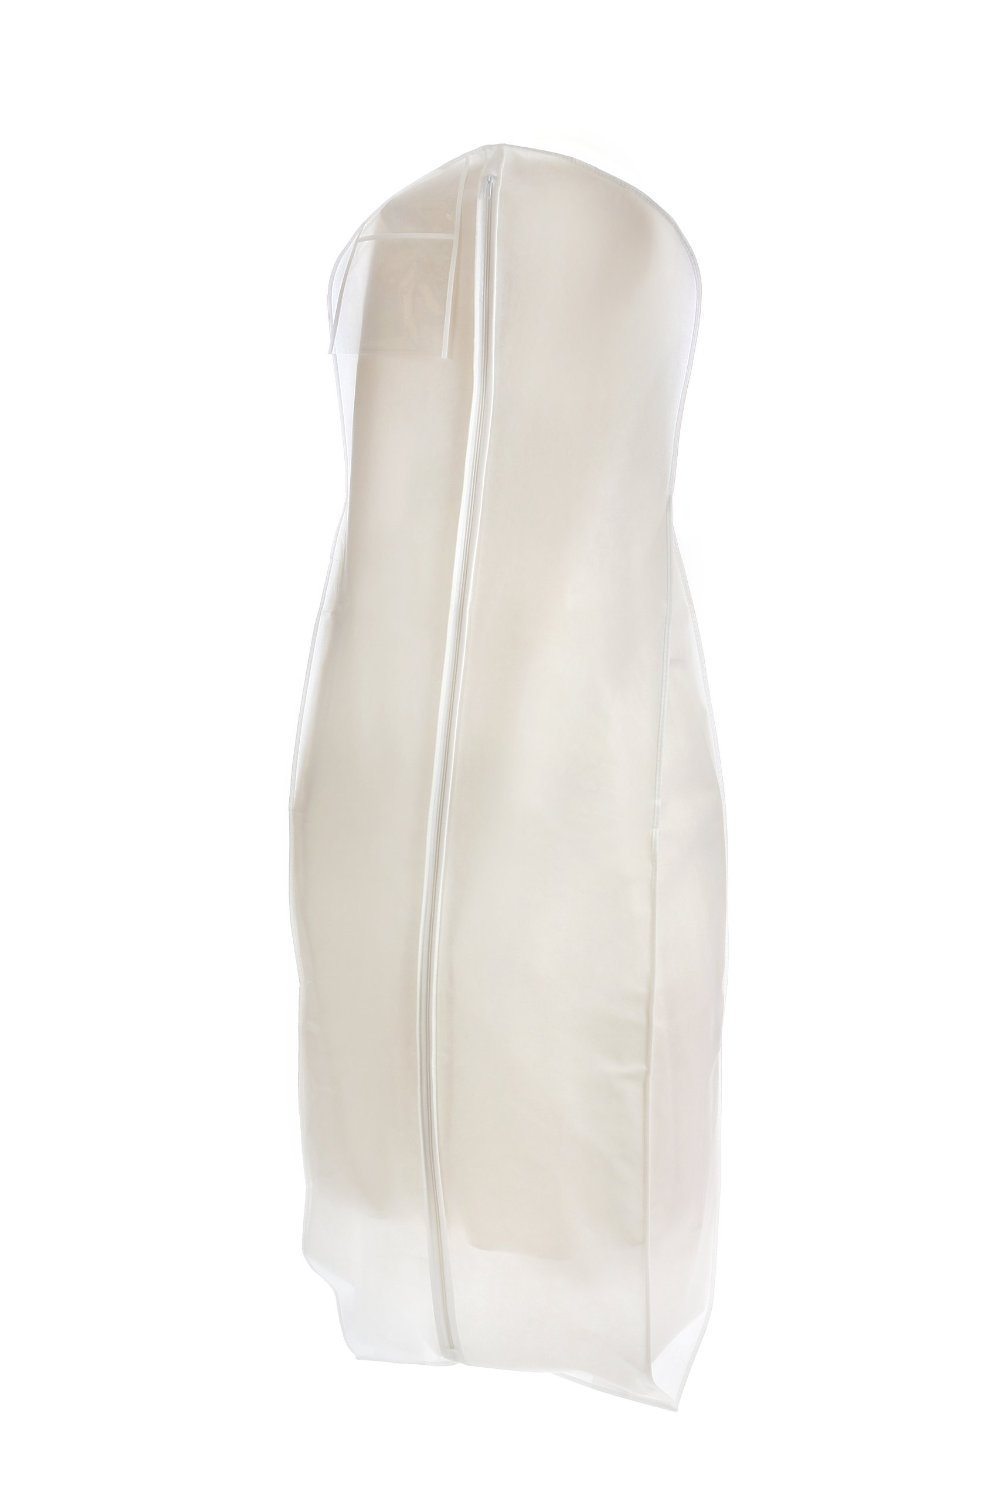 Bags For Less White Wedding Gown Travel Storage Garment Bag By